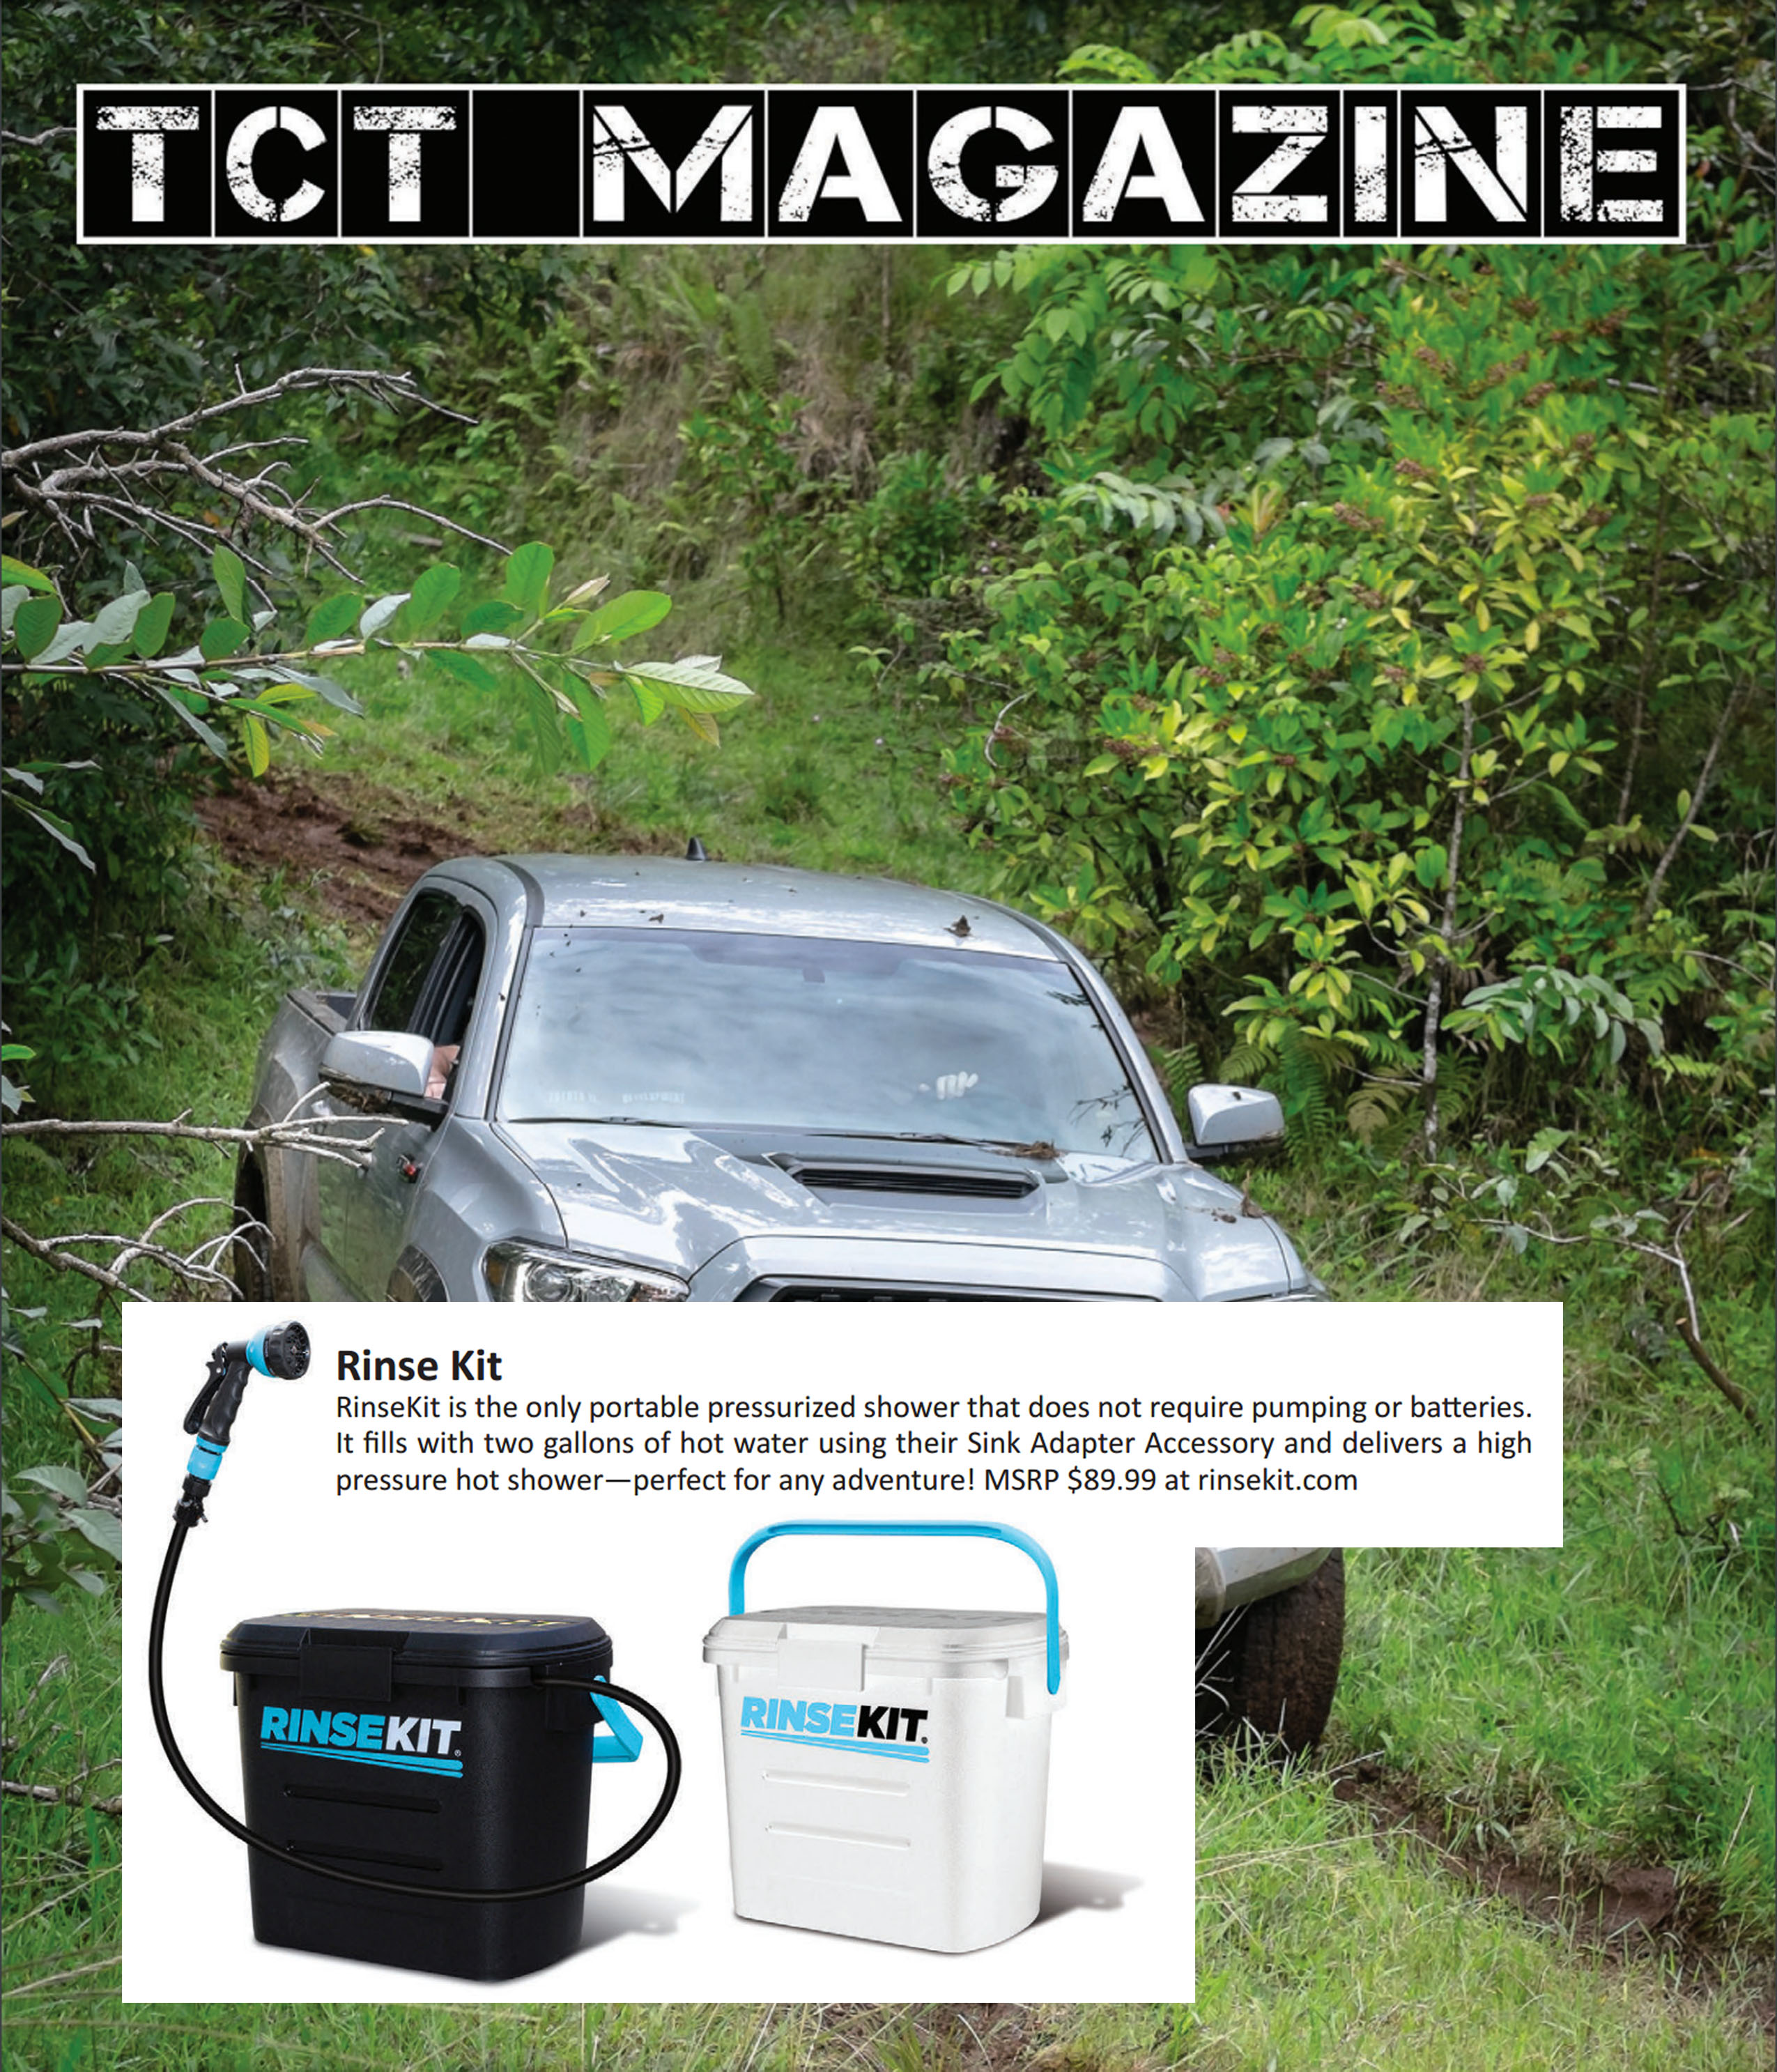 11-16-tctmag-rinsekit-feature